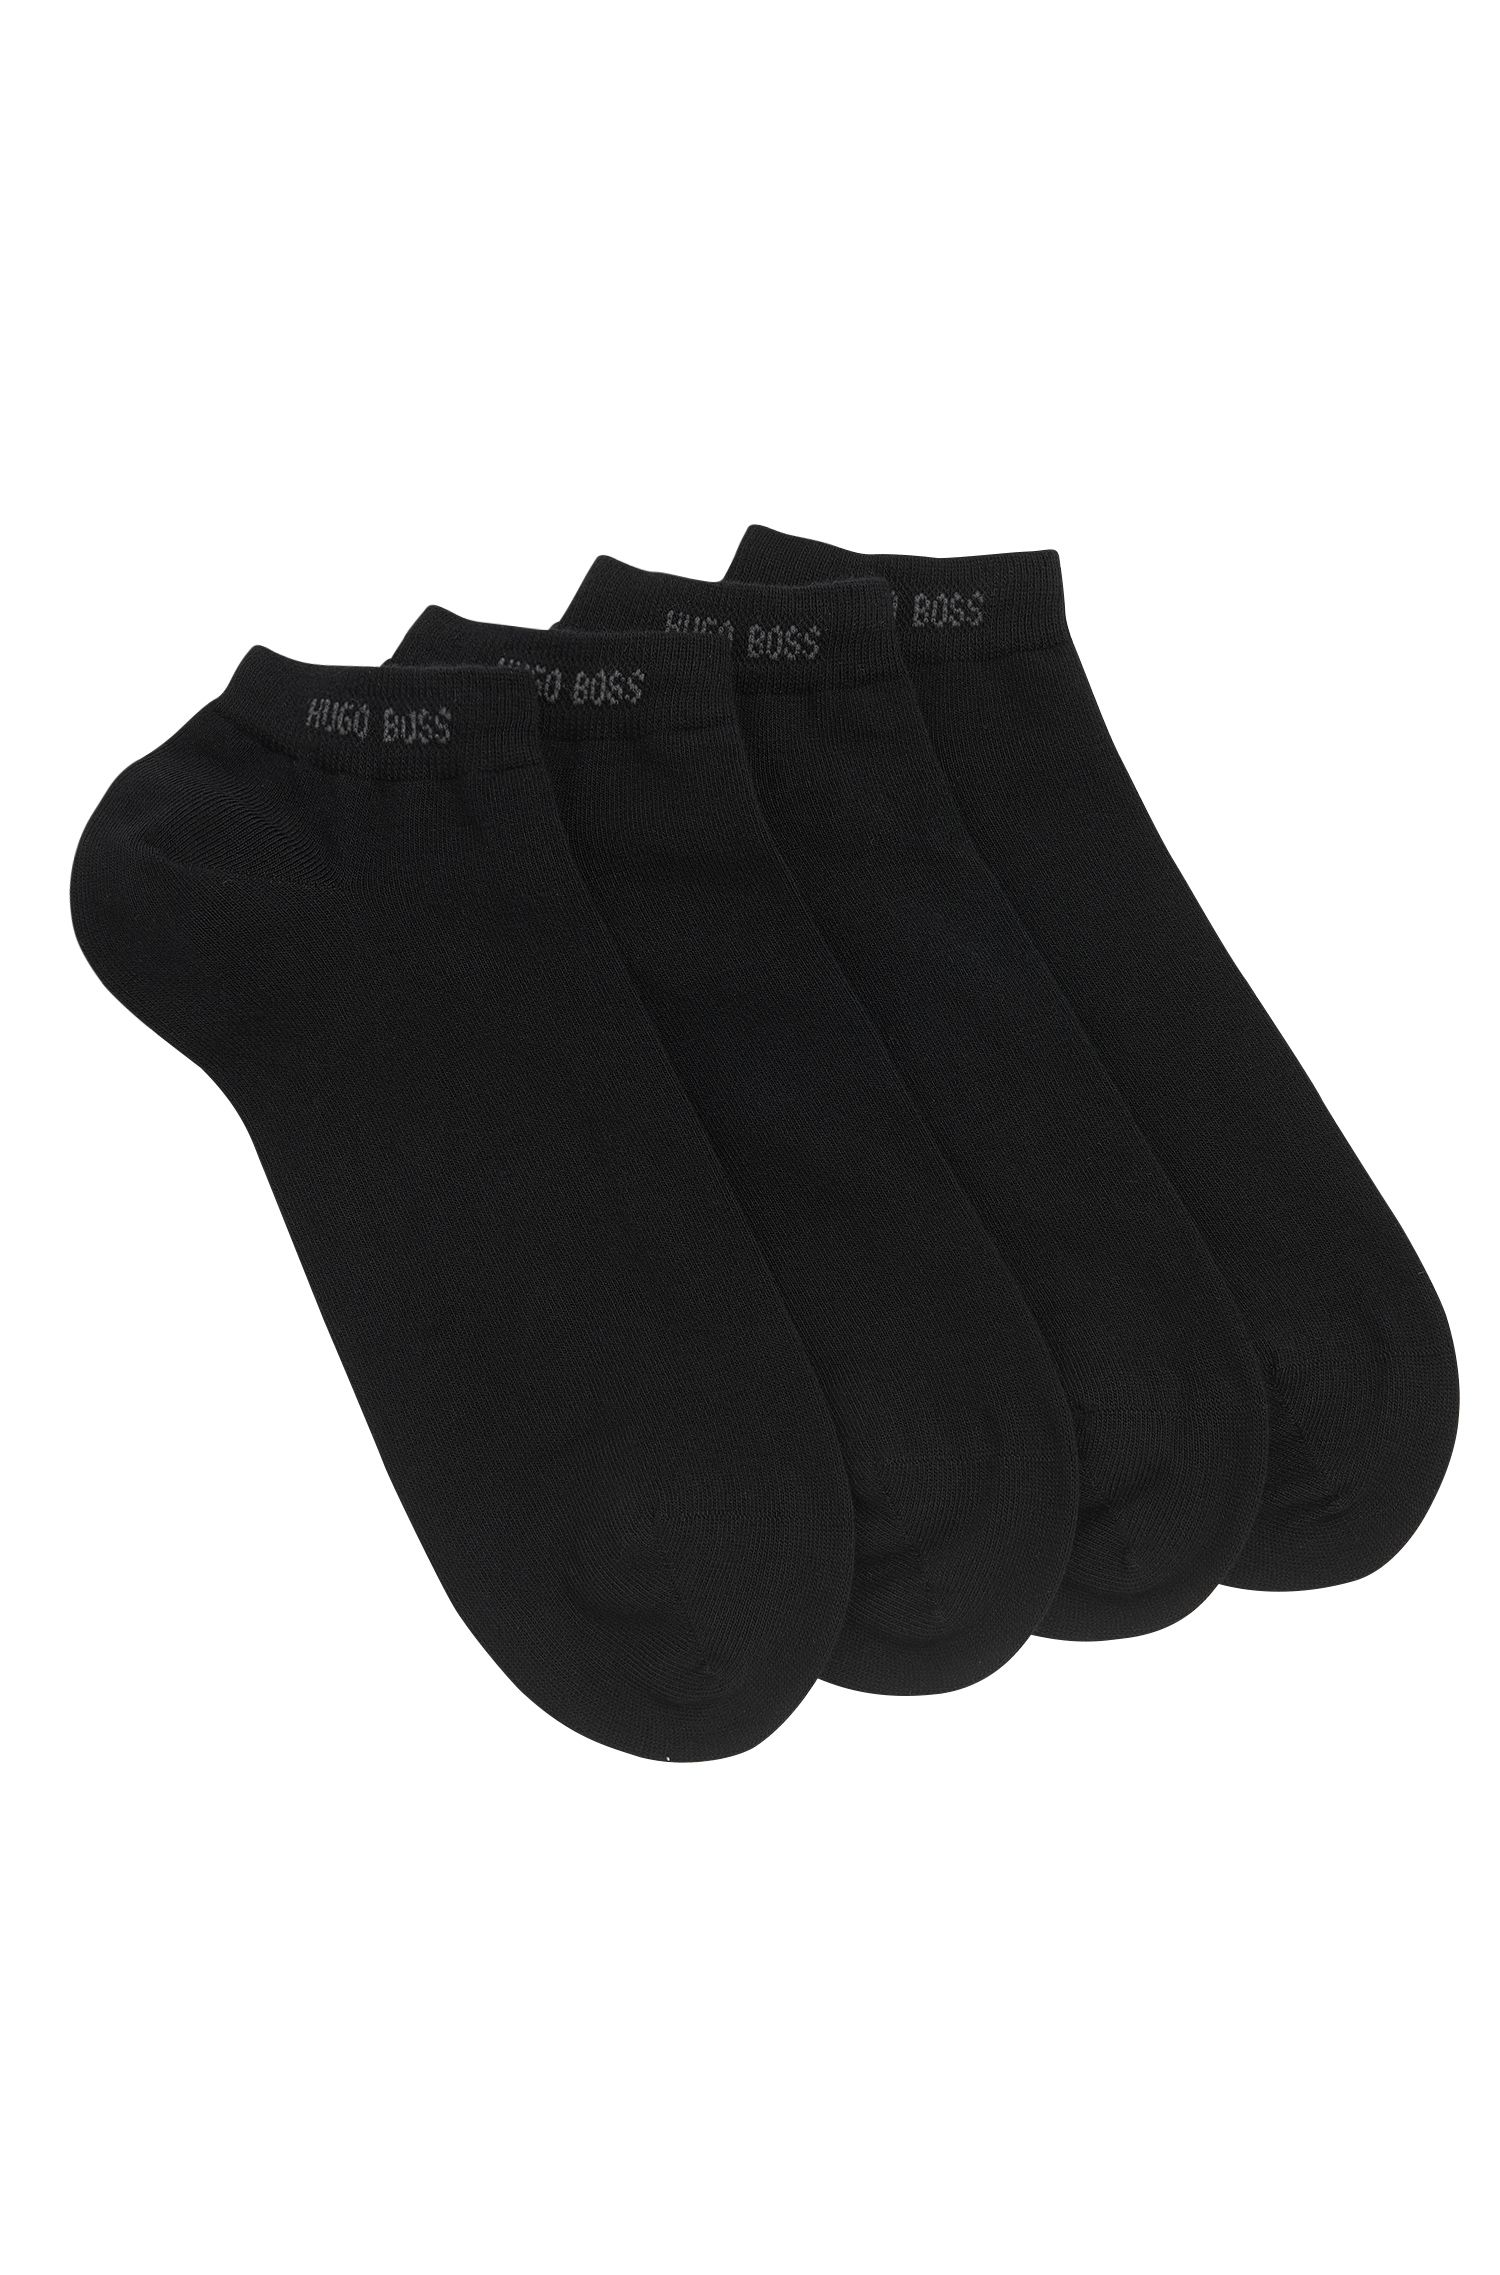 Two-pack of ankle socks in cotton blend